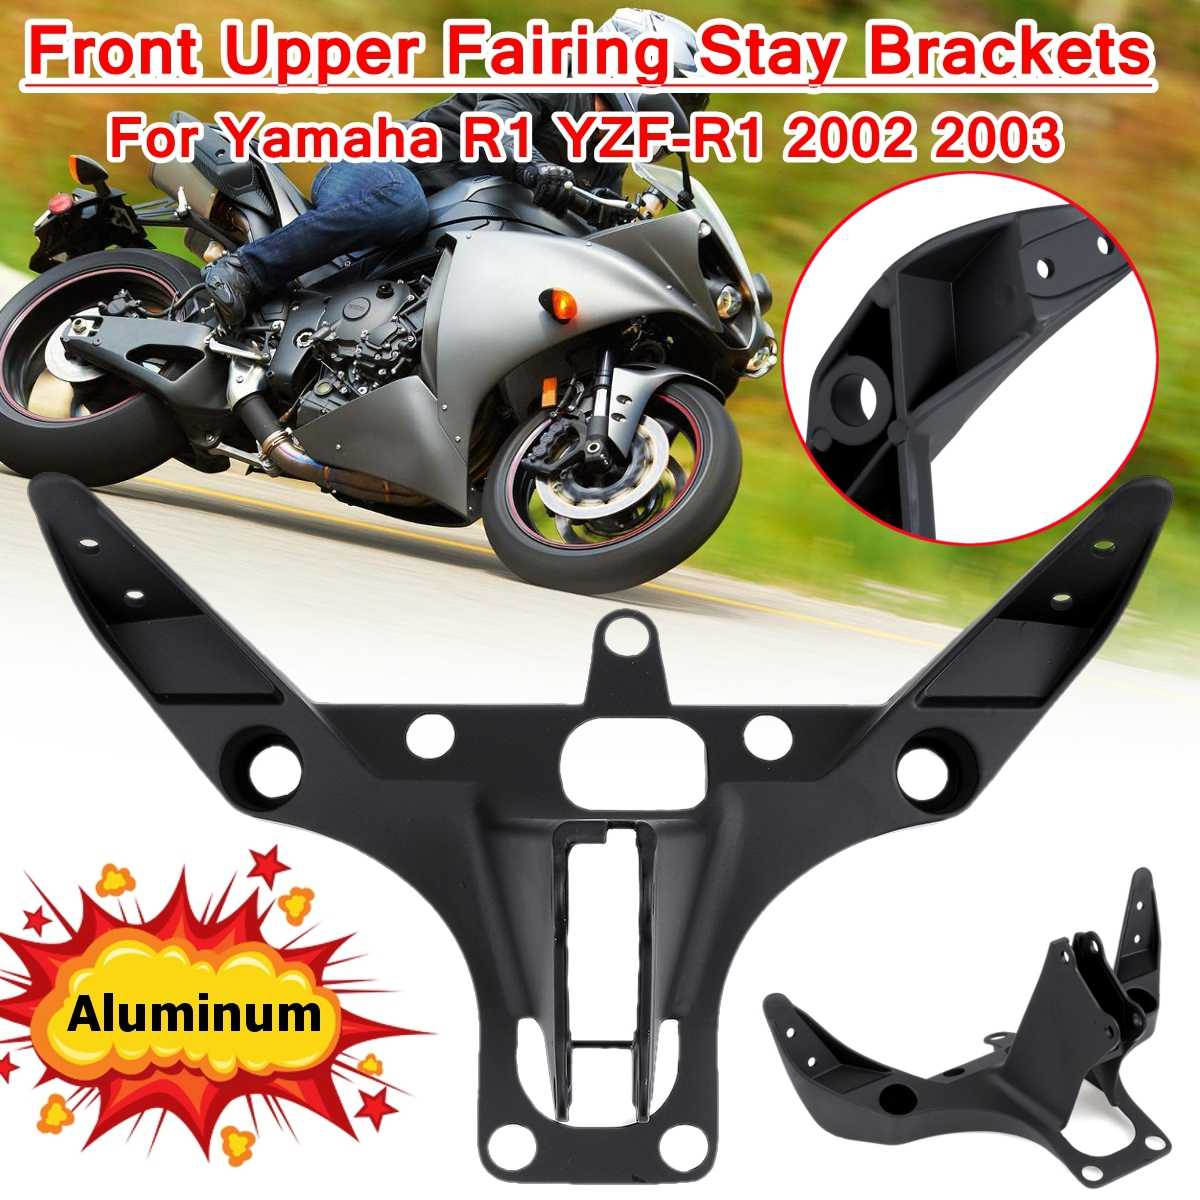 Motorcycle Front Headlight <font><b>Fairing</b></font> Cowling Stay Bracket Front Headlamp Bracket Mounting Aluminum For <font><b>Yamaha</b></font> YZF-<font><b>R1</b></font> 2002 <font><b>2003</b></font> image